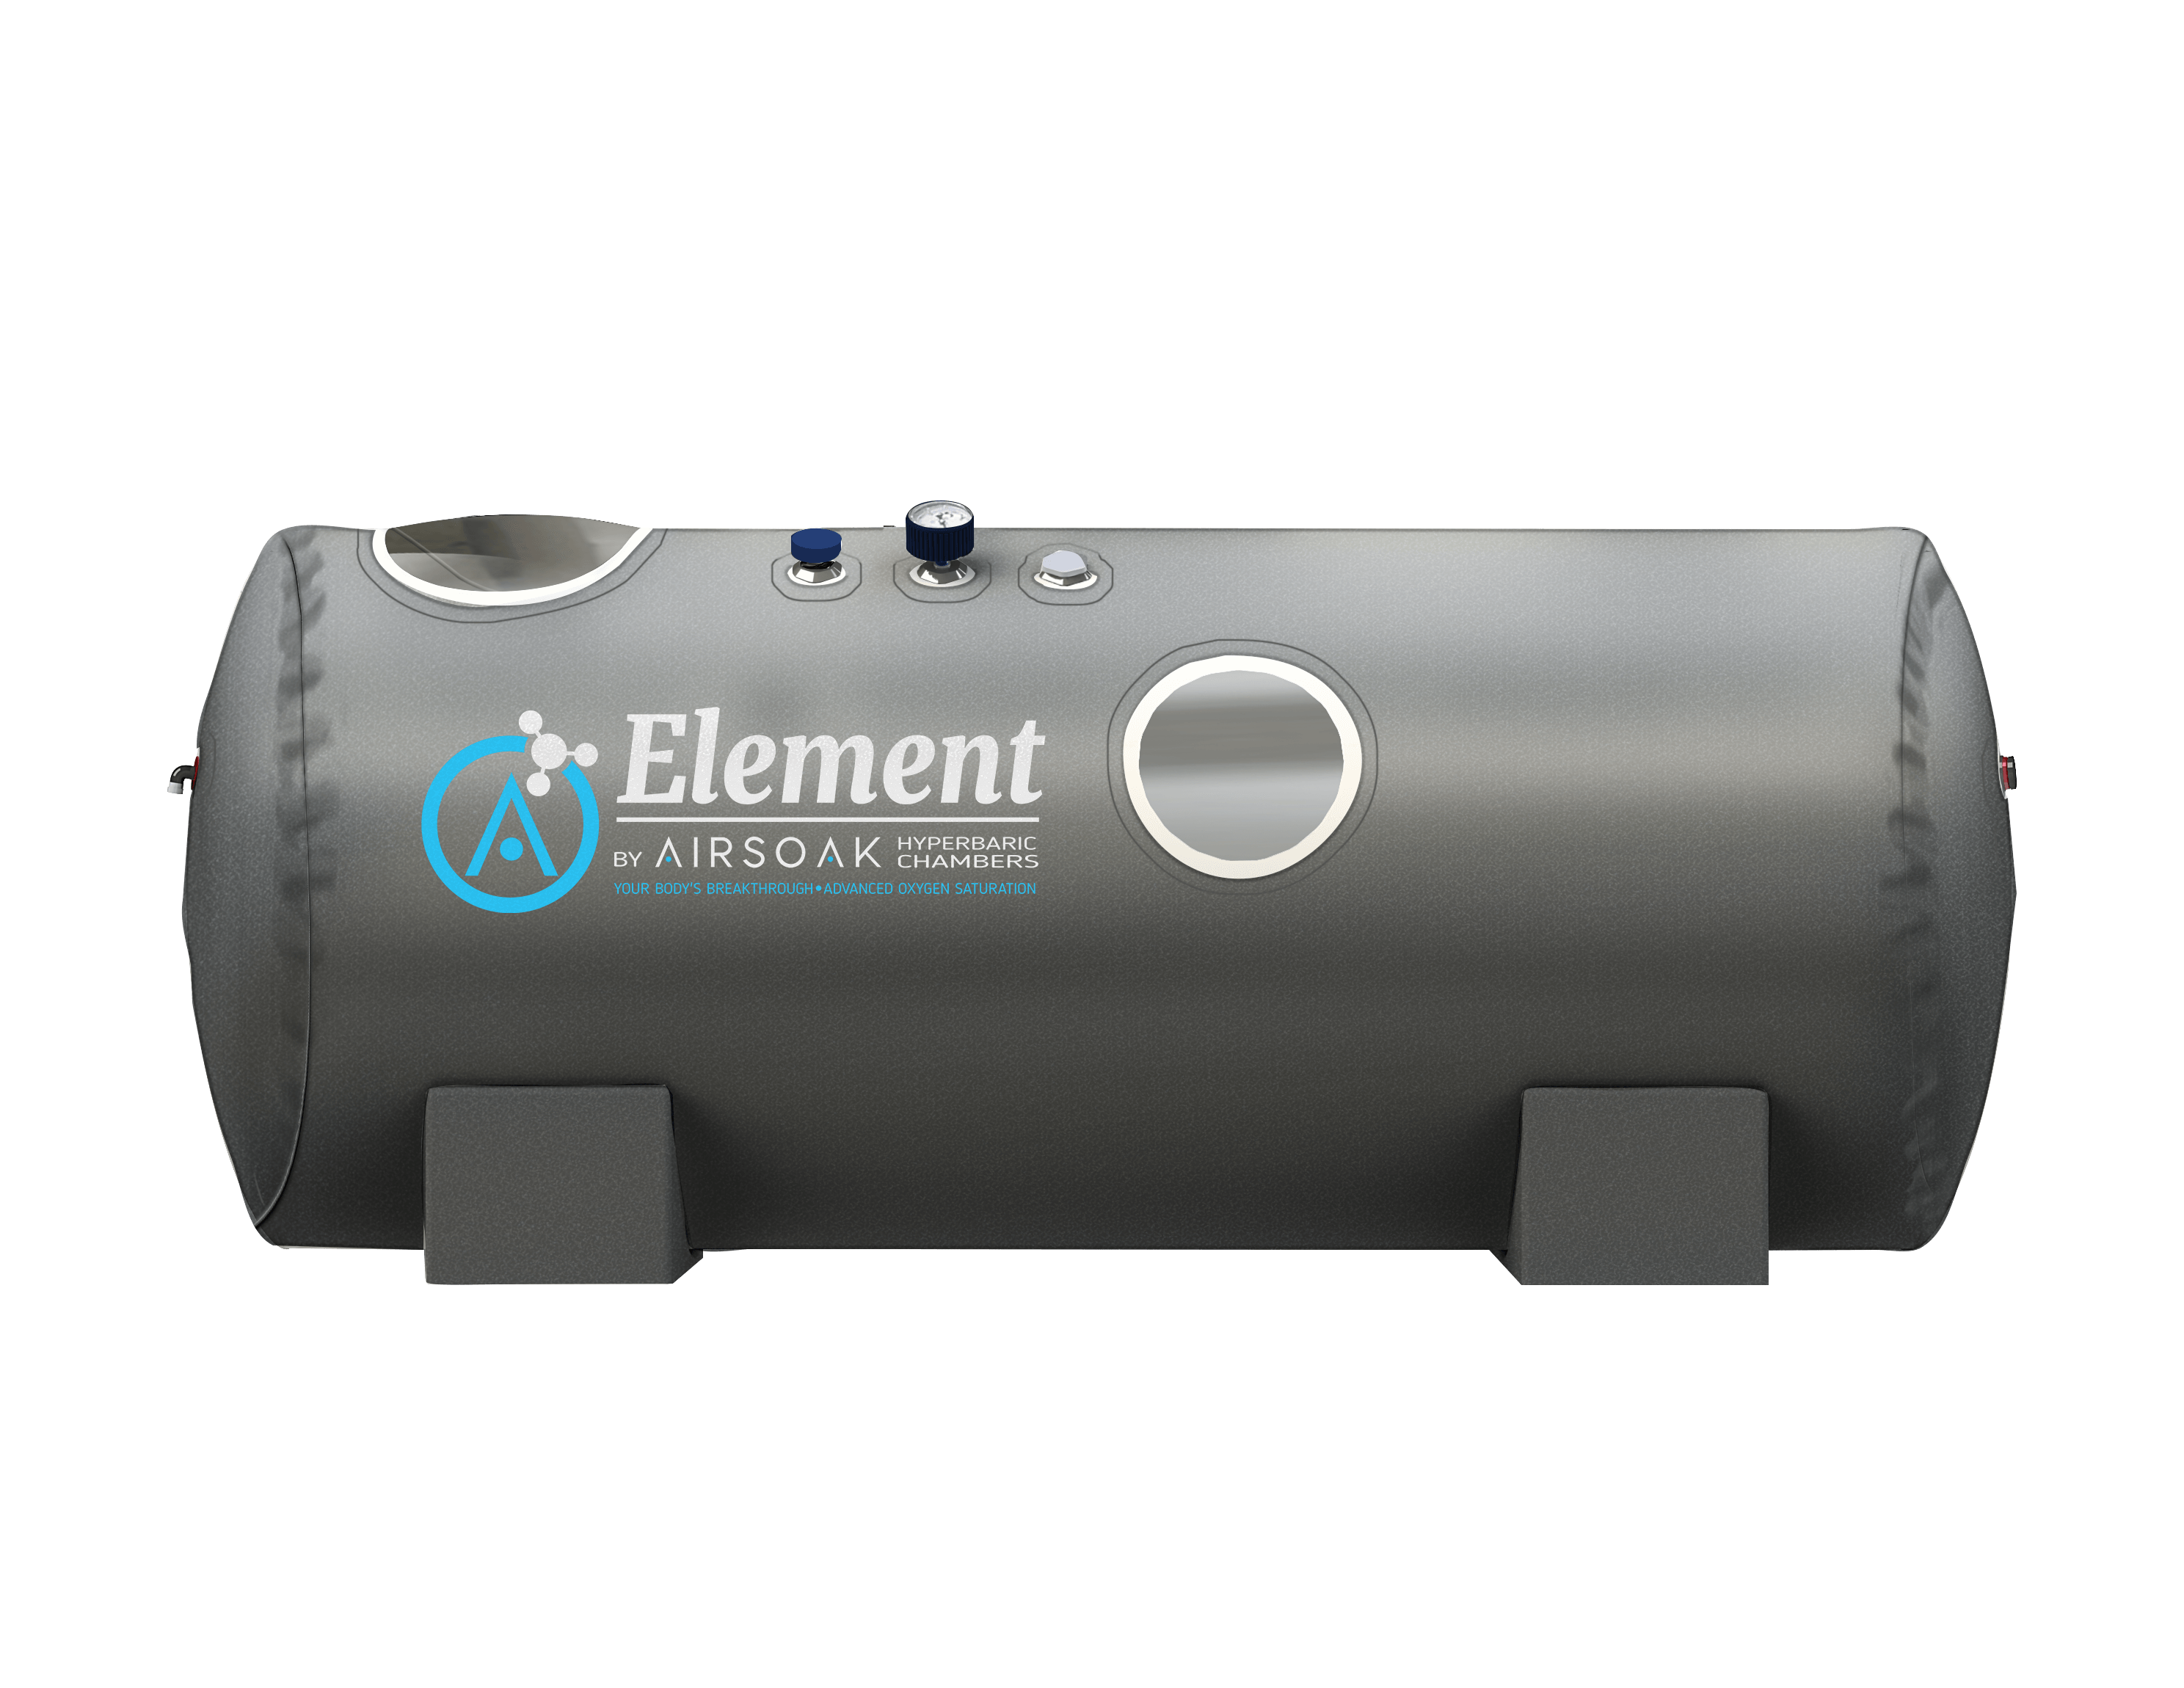 Element - SPECIAL (10L Conc. + Air Cooler + Extras) Incl.